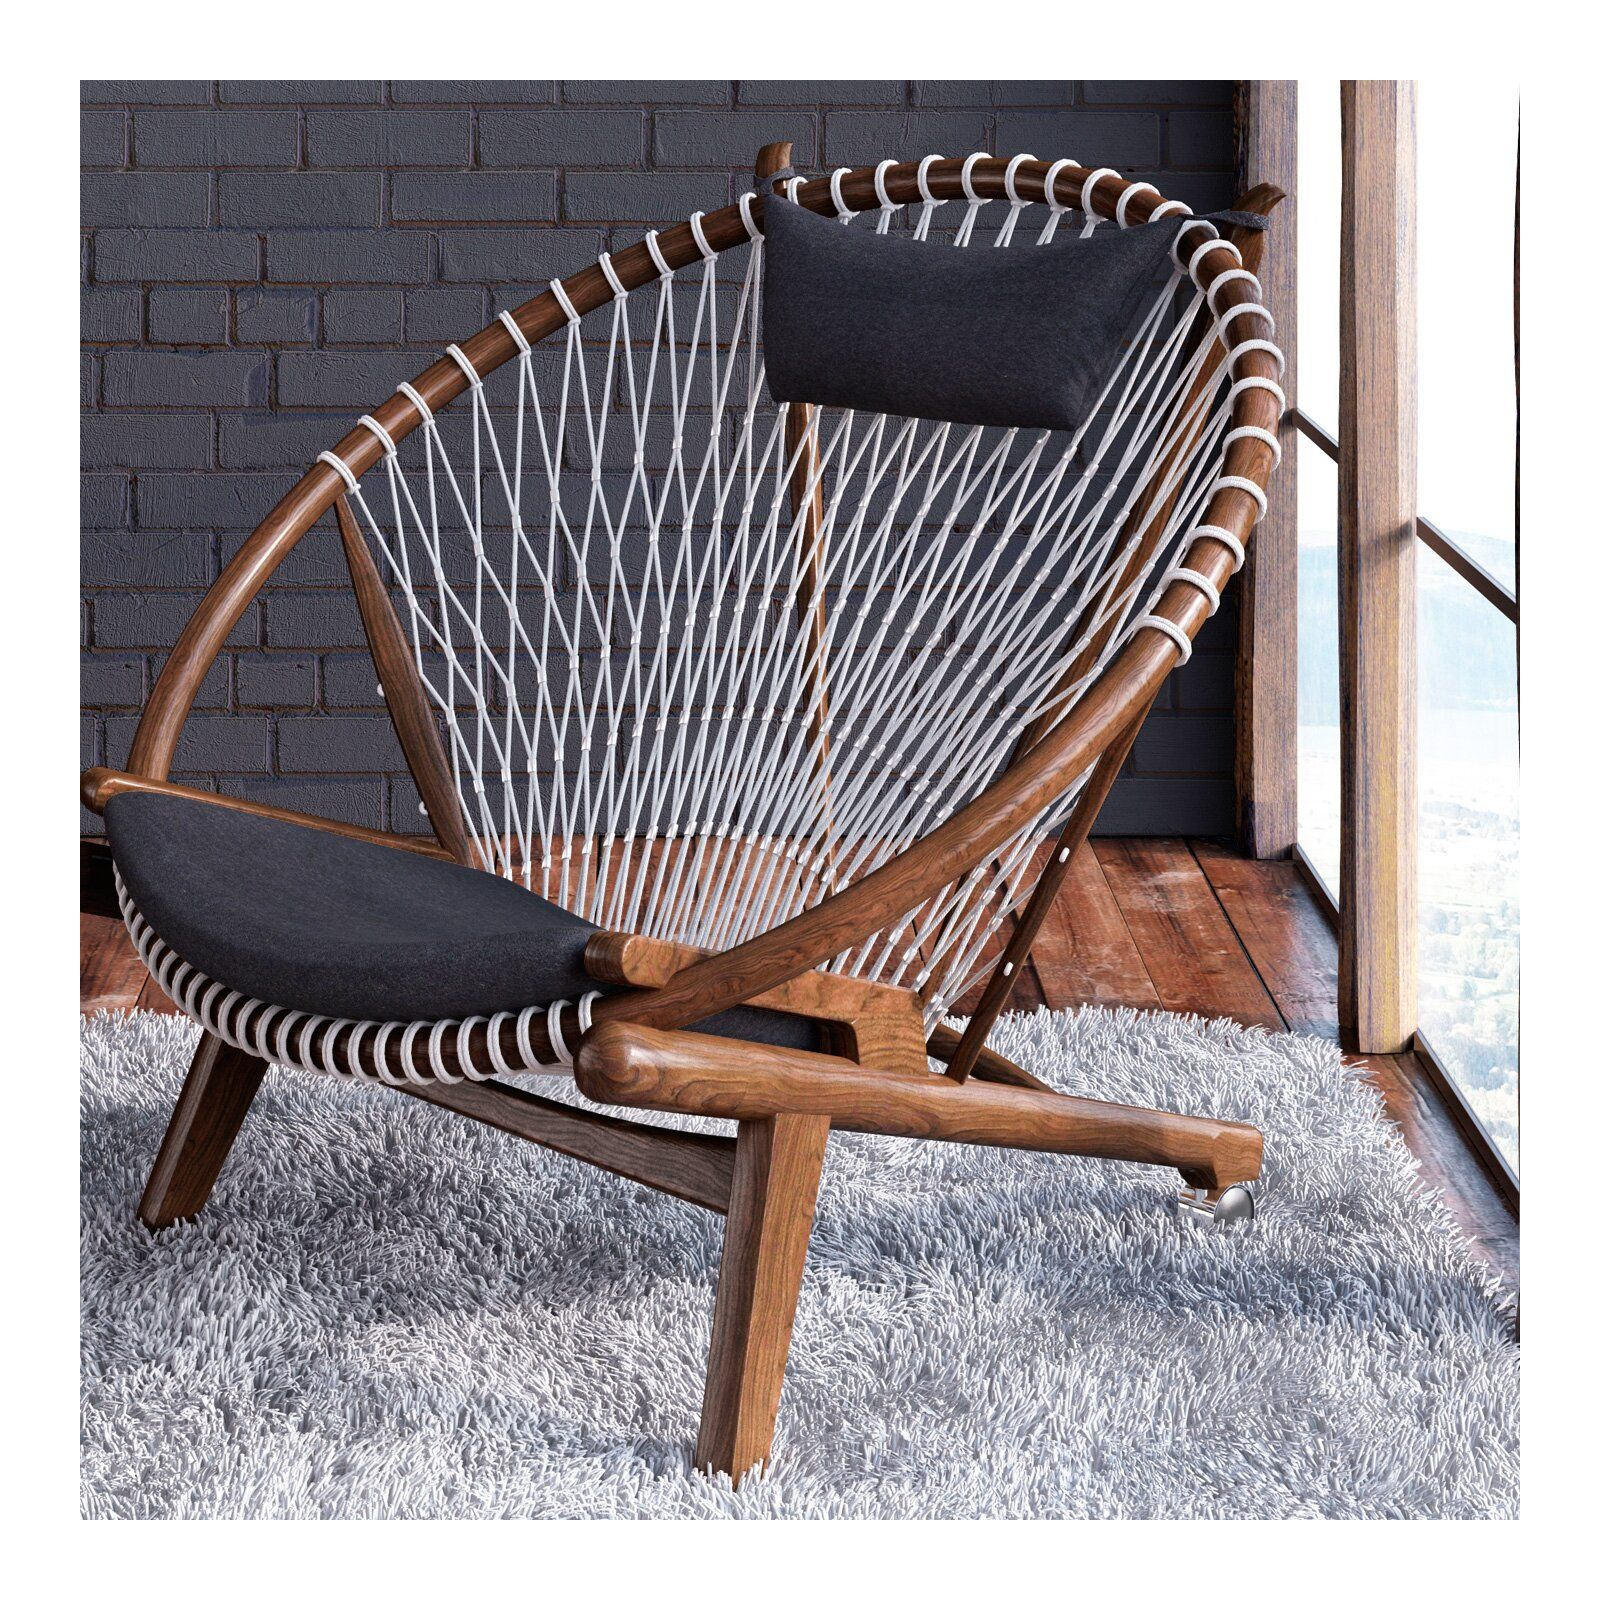 Tremendous Yelverton Papasan Chair In 2019 Papasan Chair Diy Chair Uwap Interior Chair Design Uwaporg